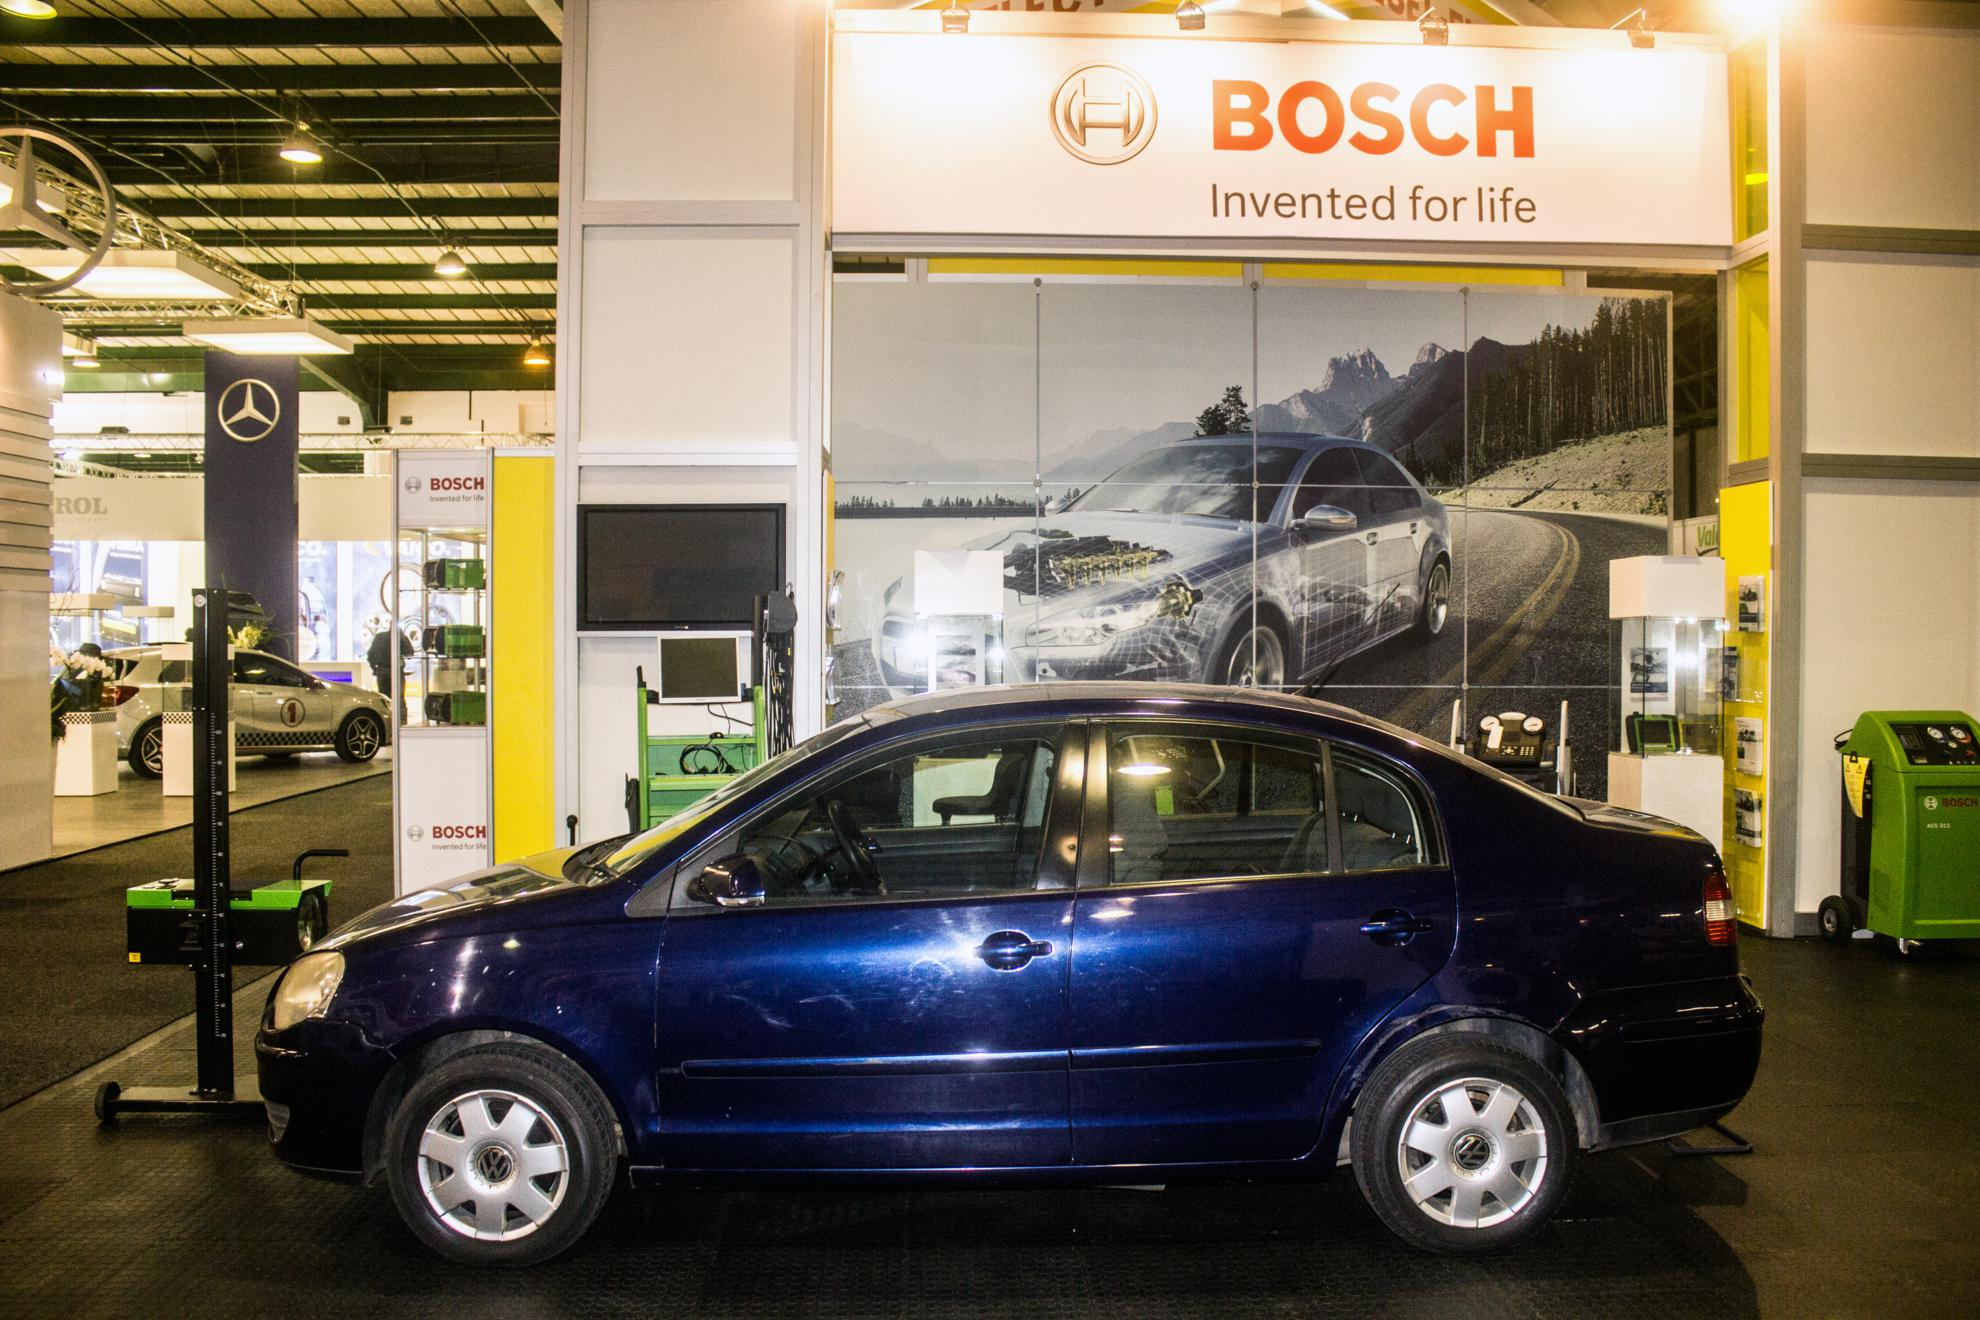 Bosch-Automechanika-South-Africa